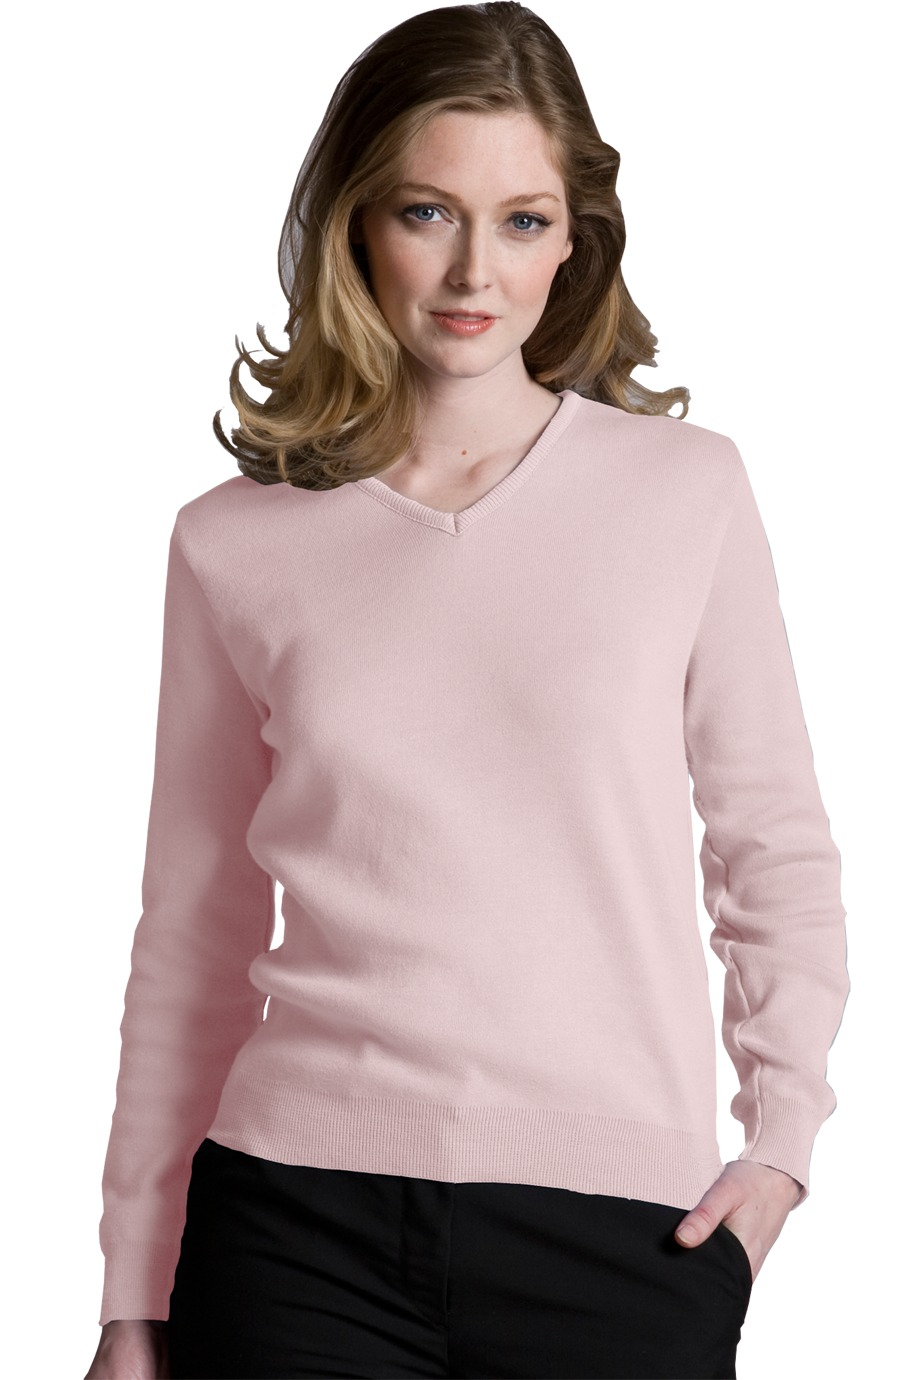 Edwards Garment 090 - Women's Cotton Cashmere V-Neck Sweater ...